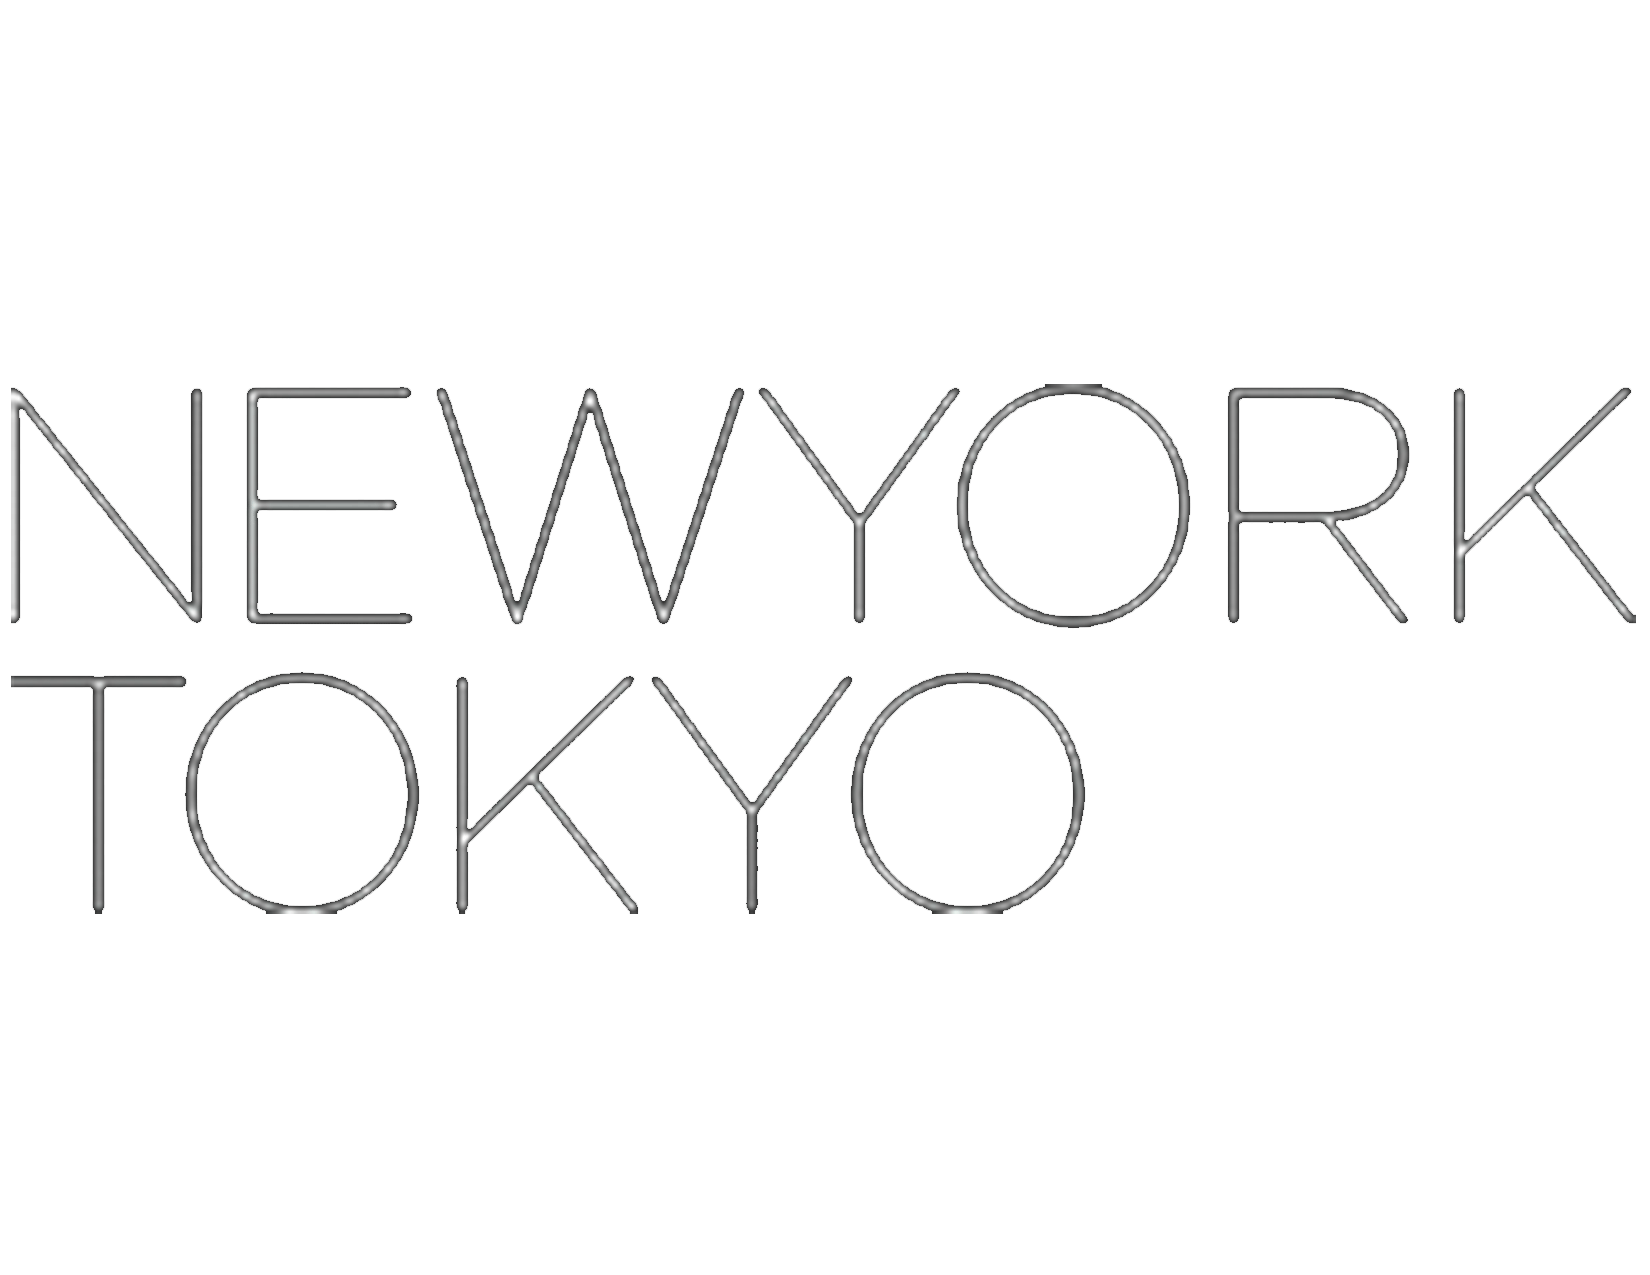 logos-white-1_0019_nyt_logo_double_ss.png